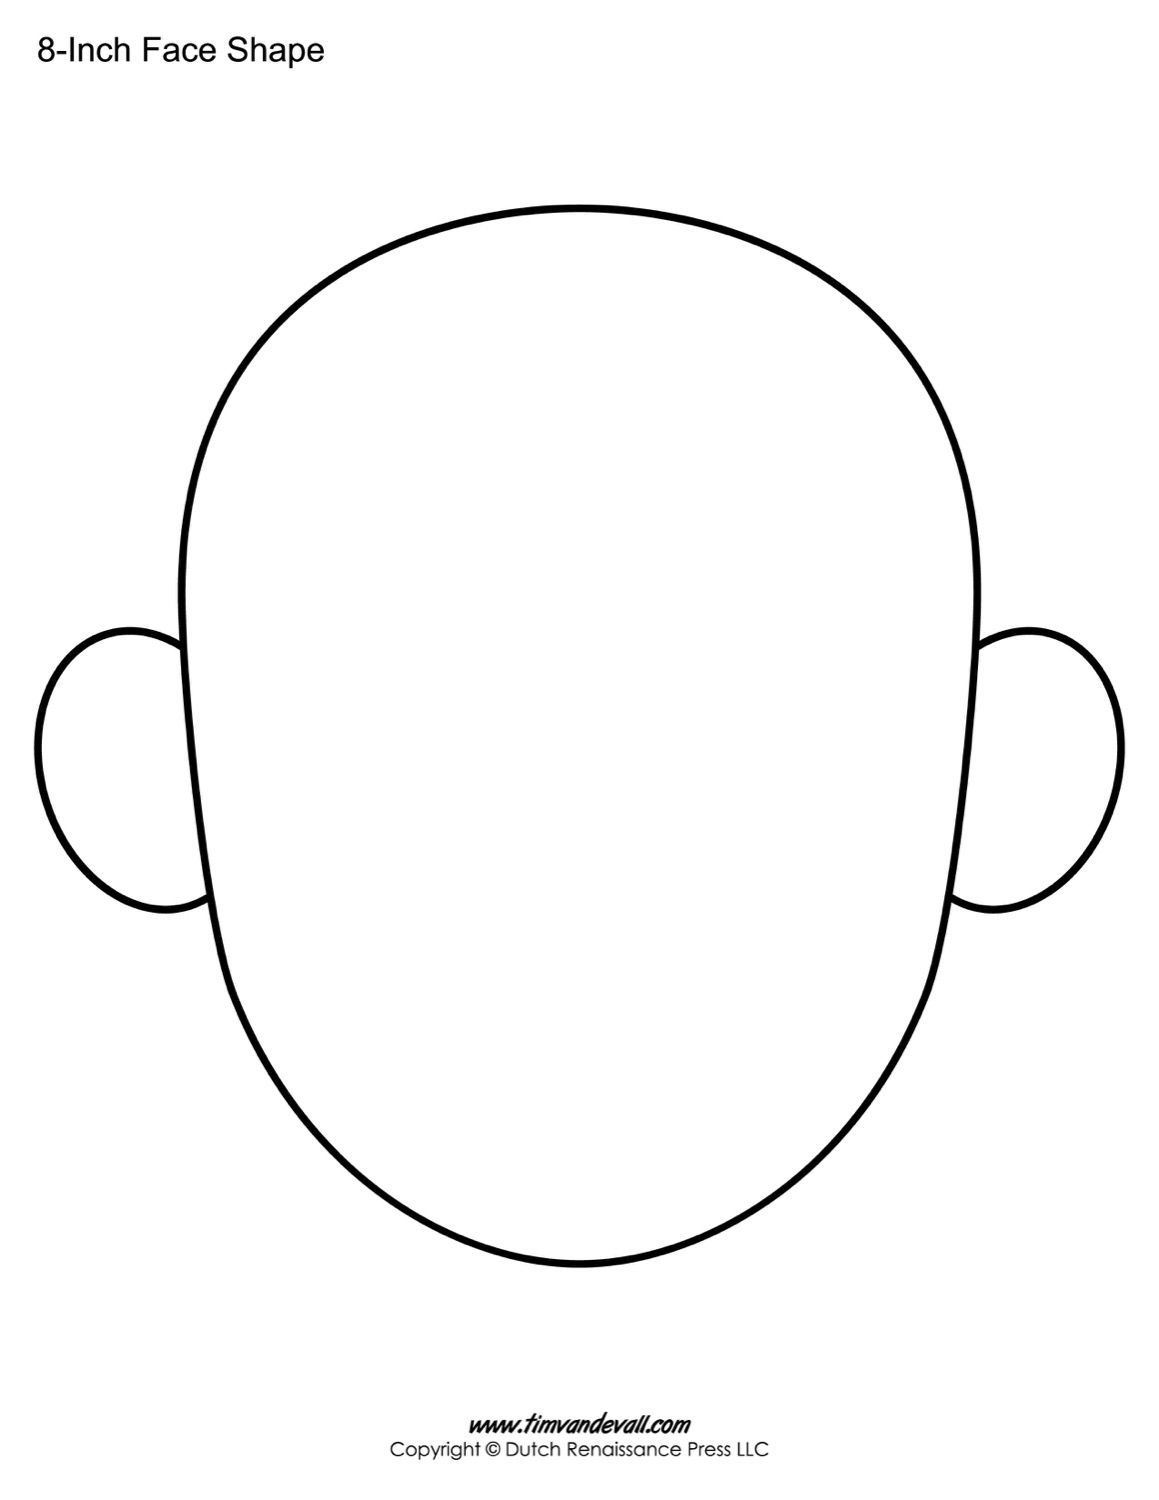 The Following Blank Face Templates Can Be Use For A